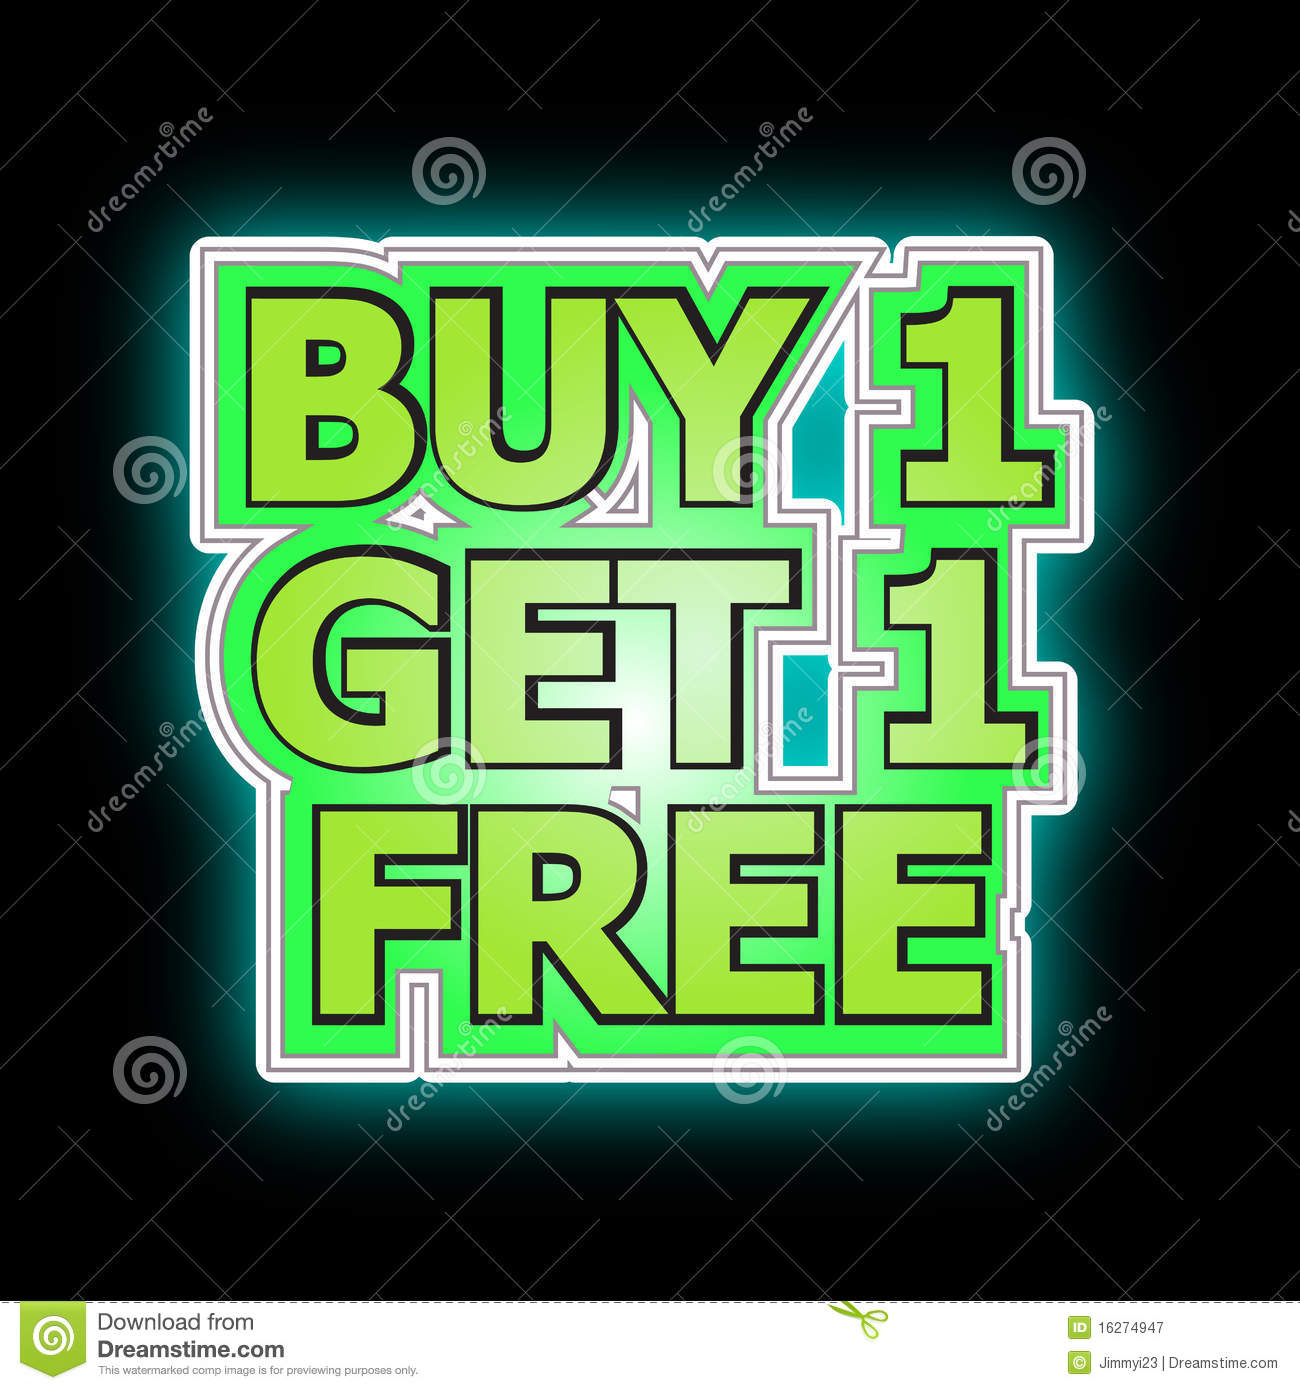 Buy: Buy One Get One Free Royalty Free Stock Photography